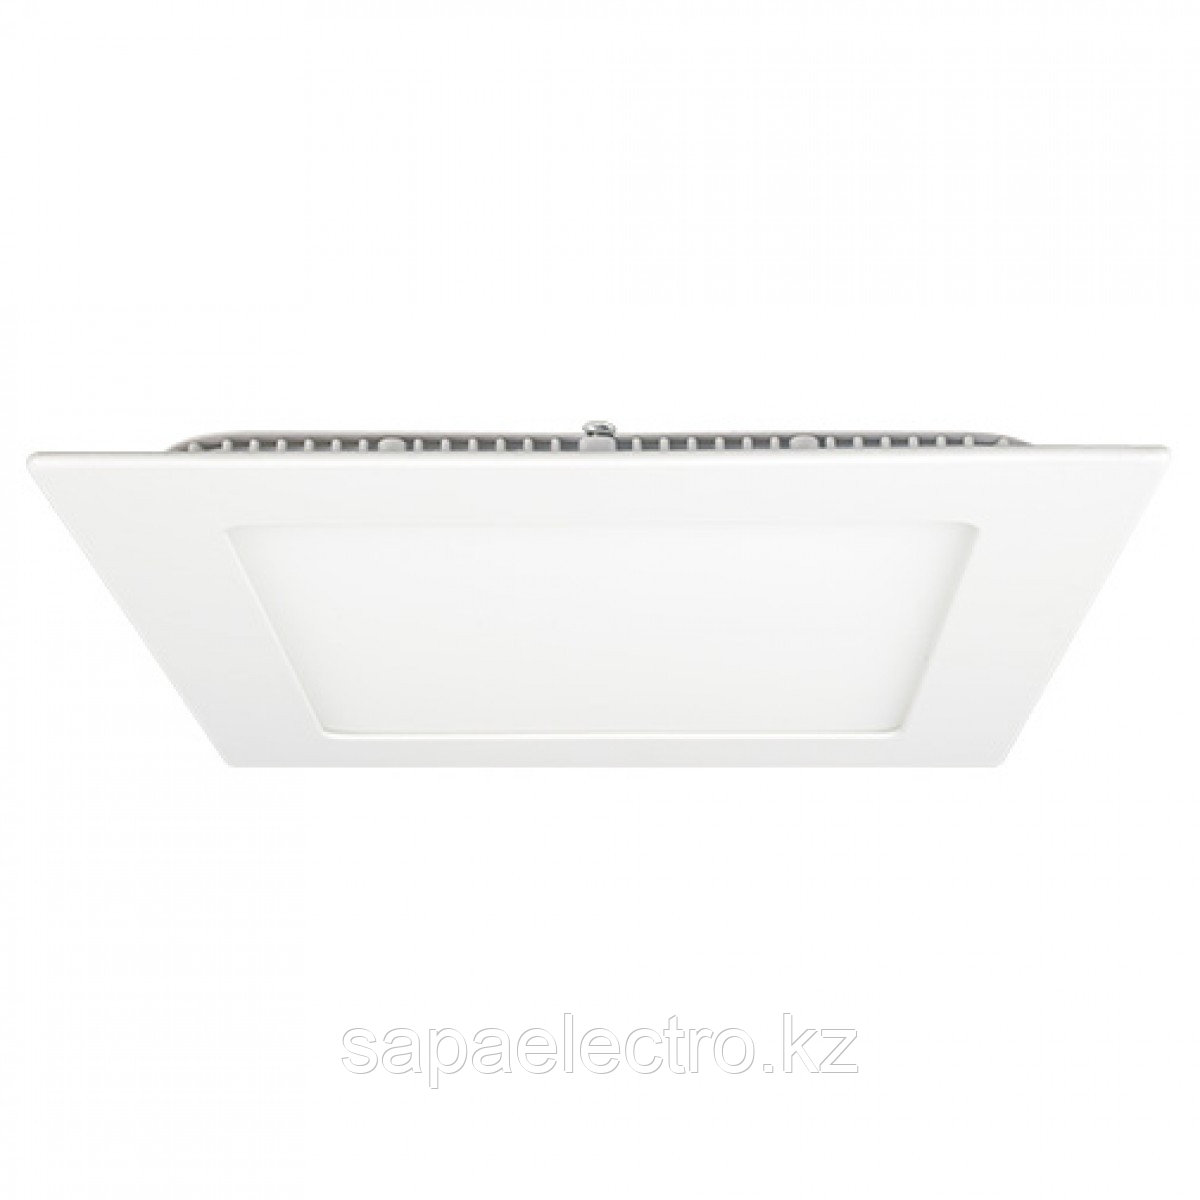 Свет-к DL LED KVADRO PANEL 6W 6000K (TS) 50шт